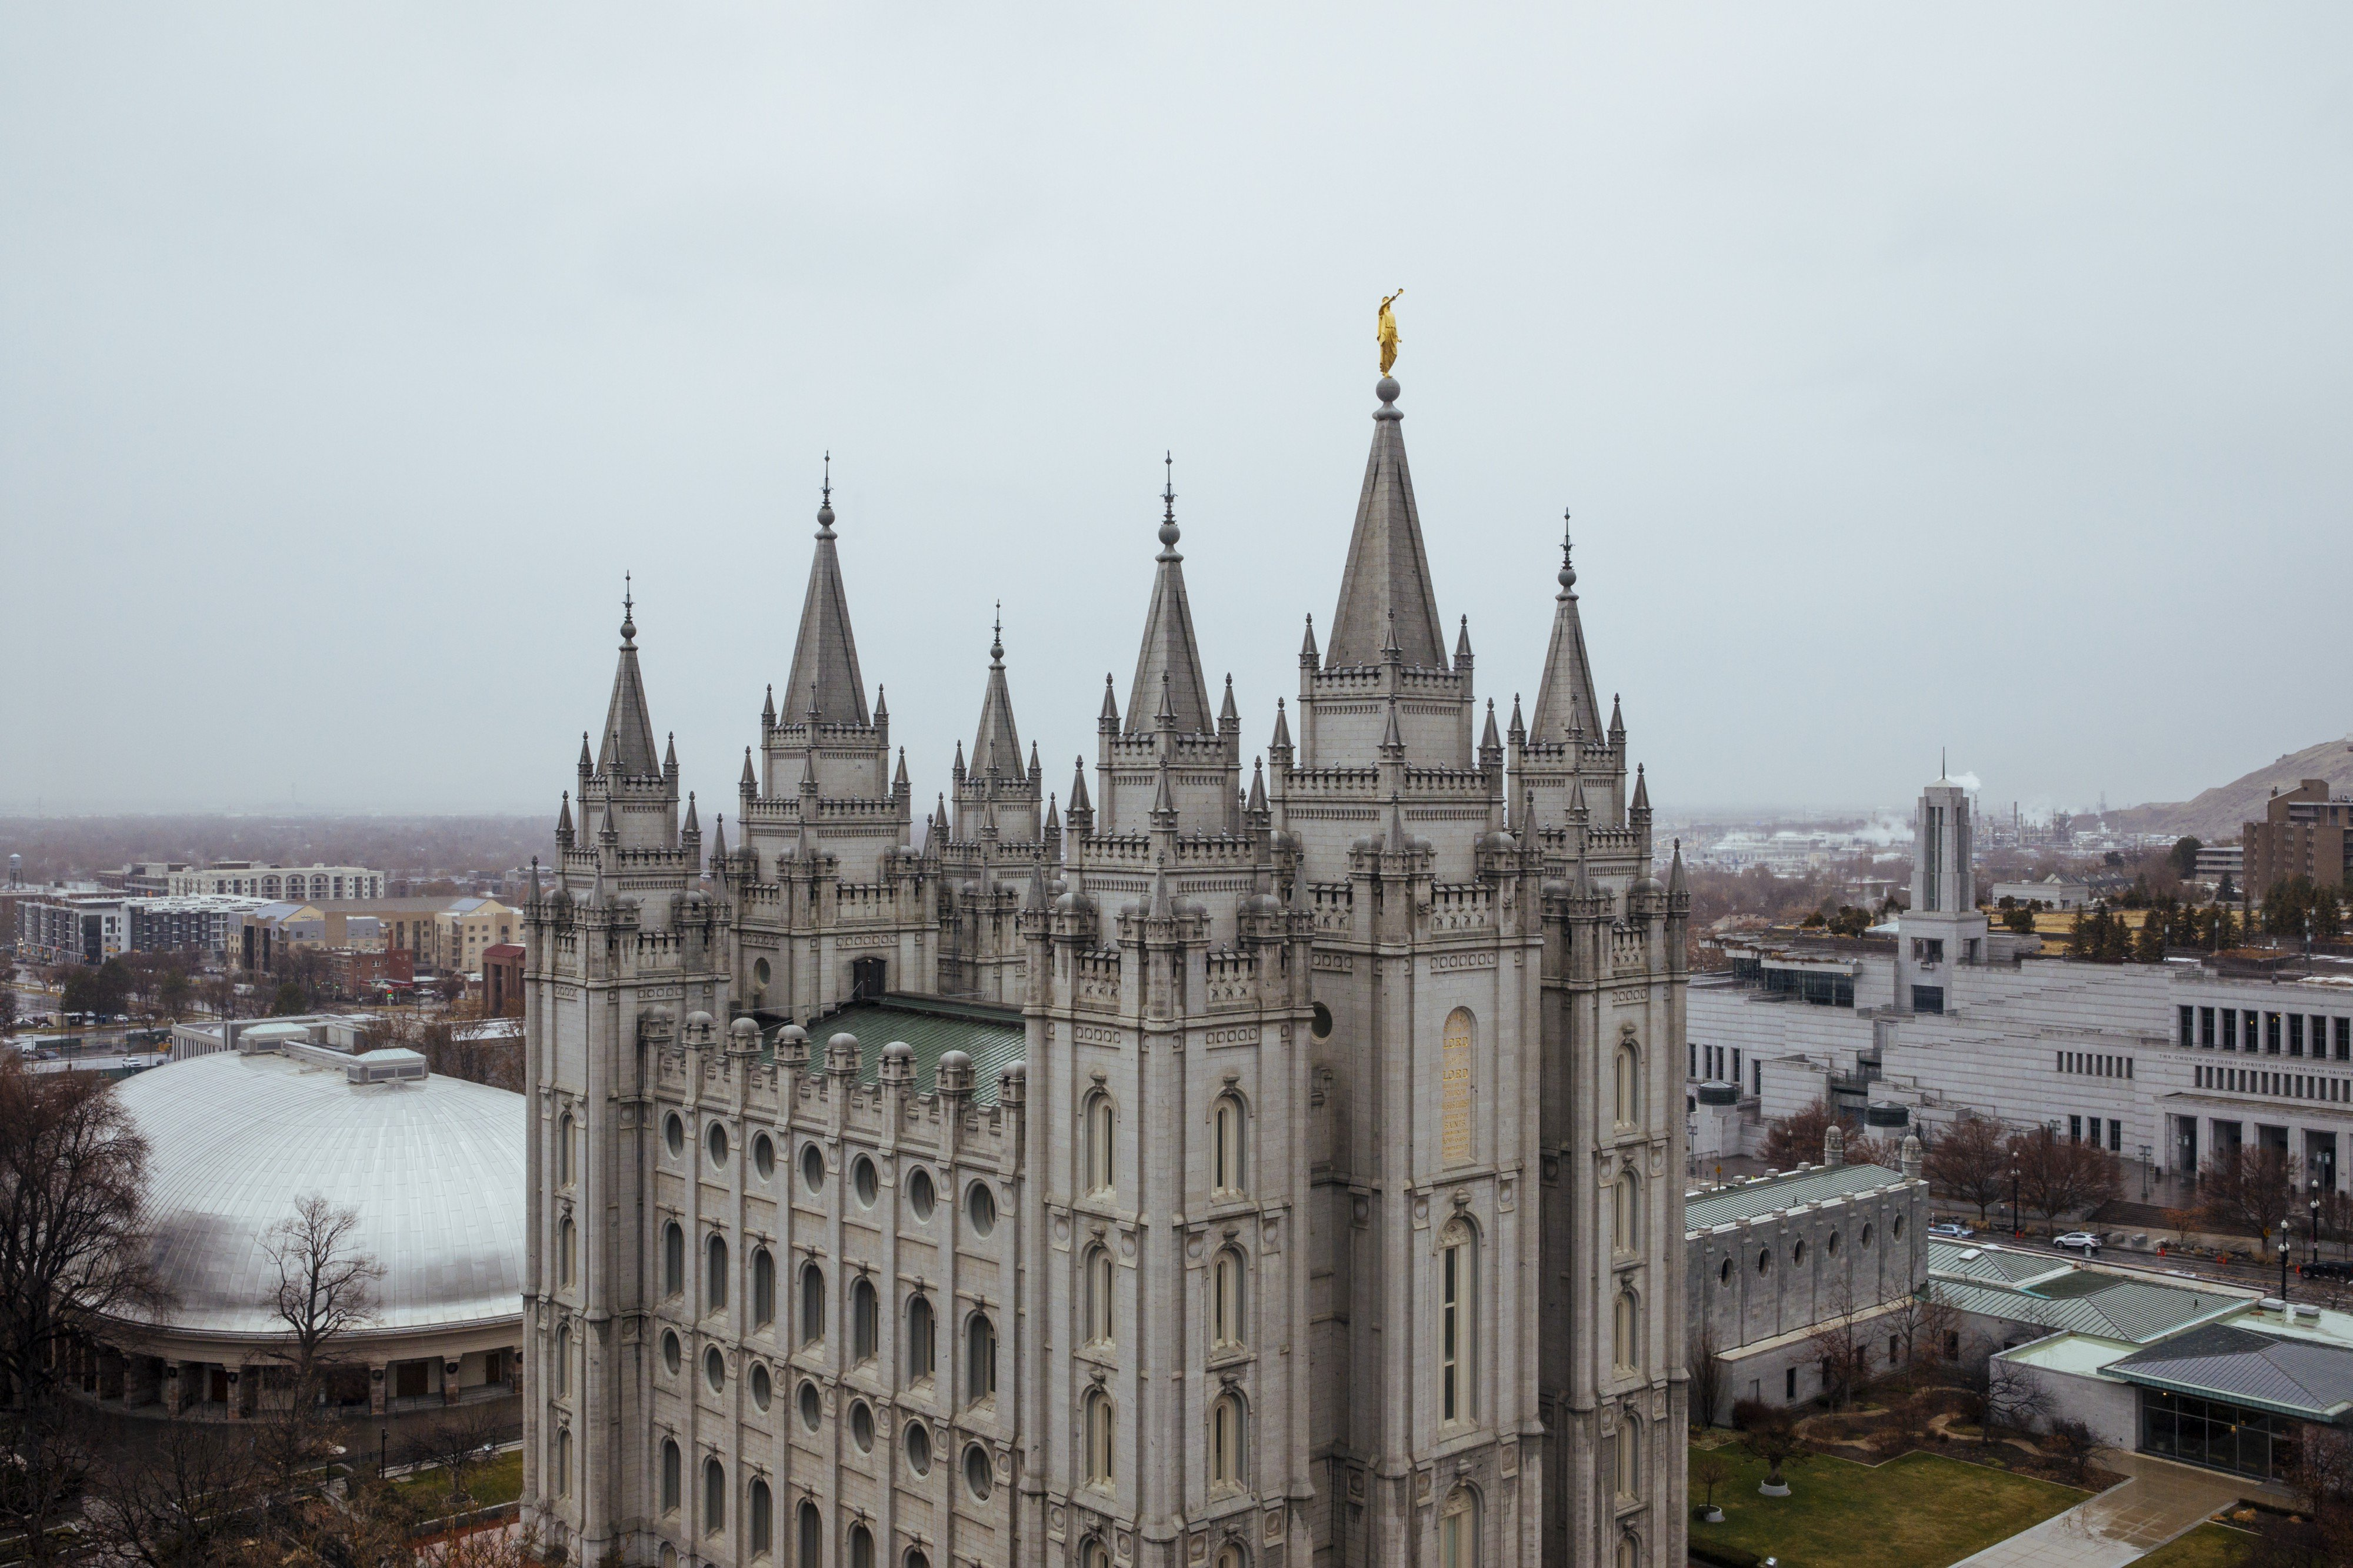 The Salt Lake Temple is the center of the universe in Utah, where members of the politically and socially conservative Church of Jesus Christ of Latter-day Saints make up 62 percent of the state's 3.2 million population. Mormons have long been a quiet force in business, including the founders of WordPerfect, Novell, and JetBlue.